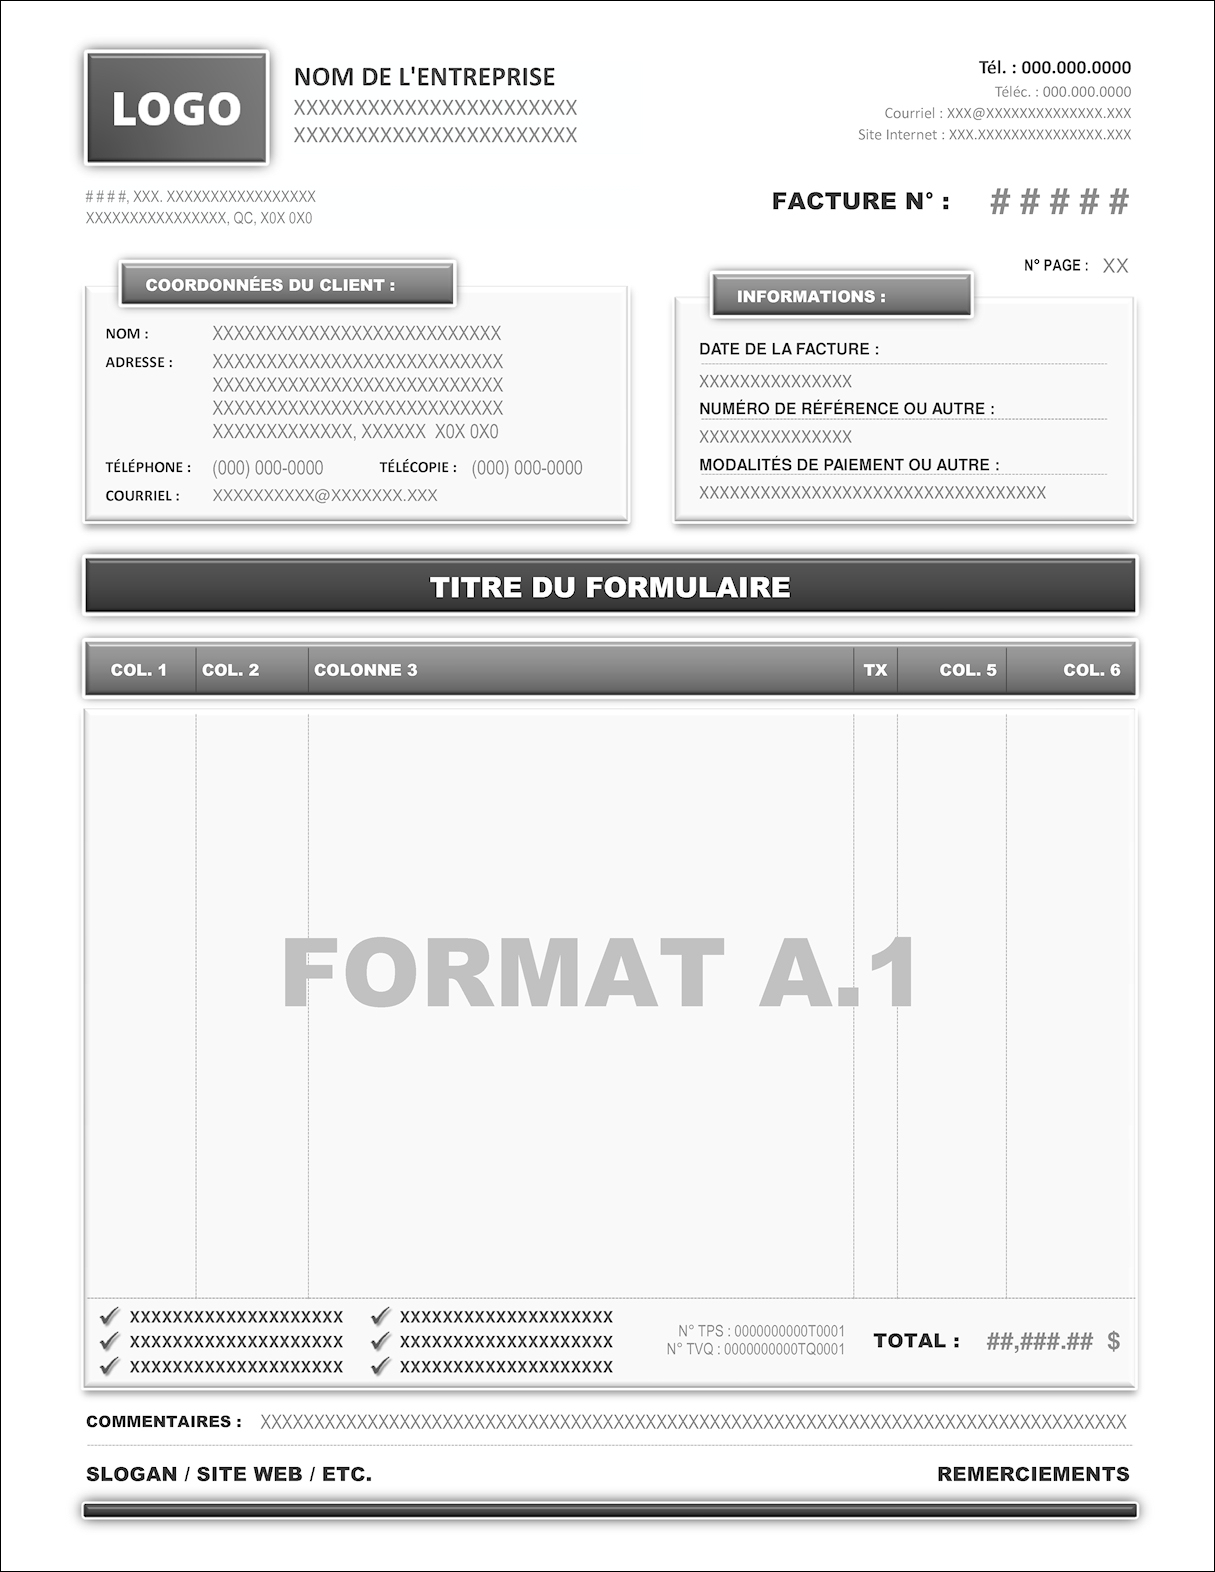 FORMAT A.1